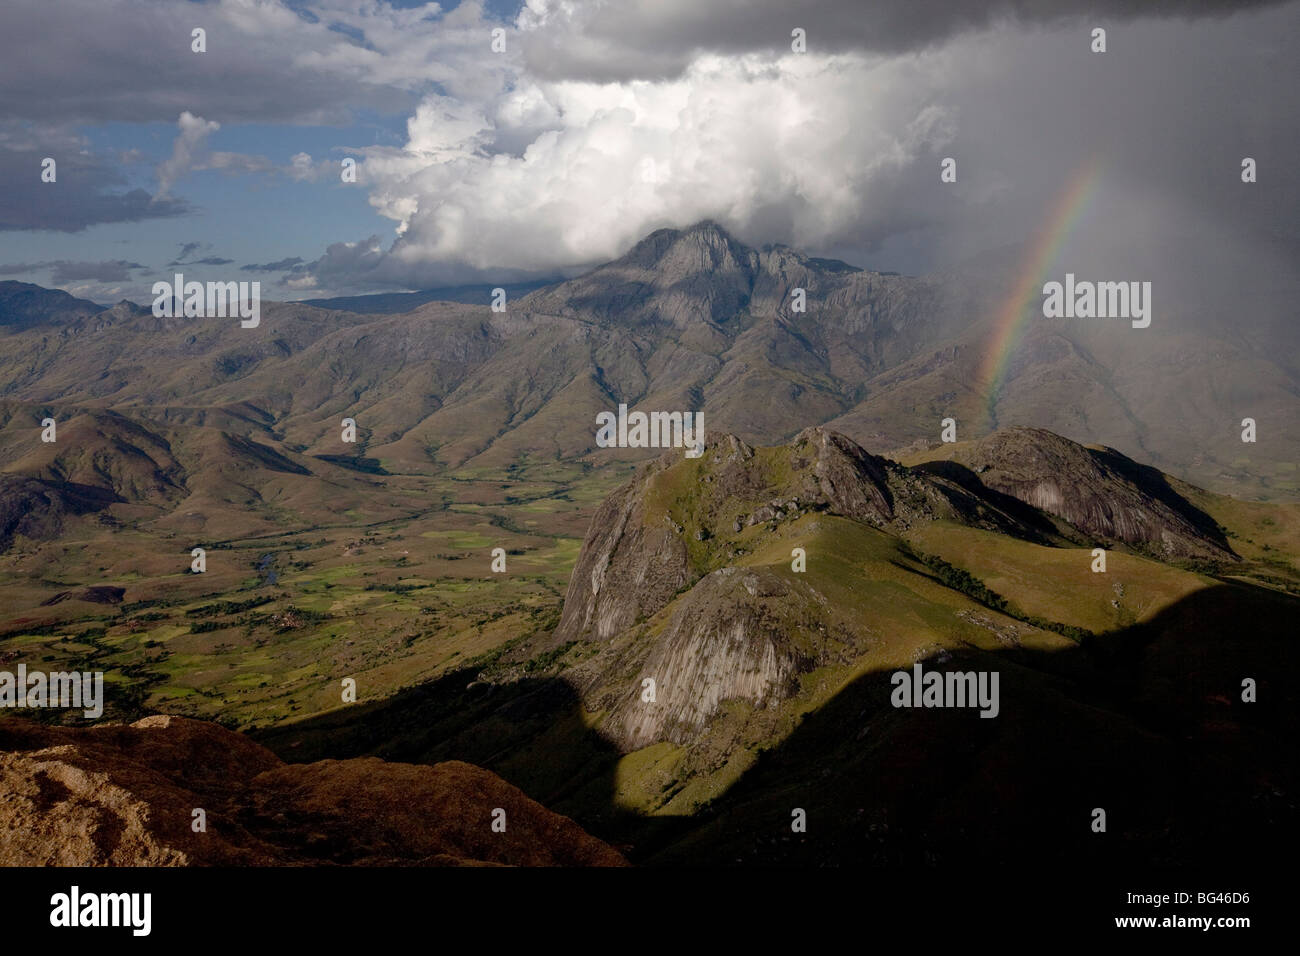 A rainbow appears looking east across the granite mountains of the Andringitra National Park, Southern Madagascar - Stock Image